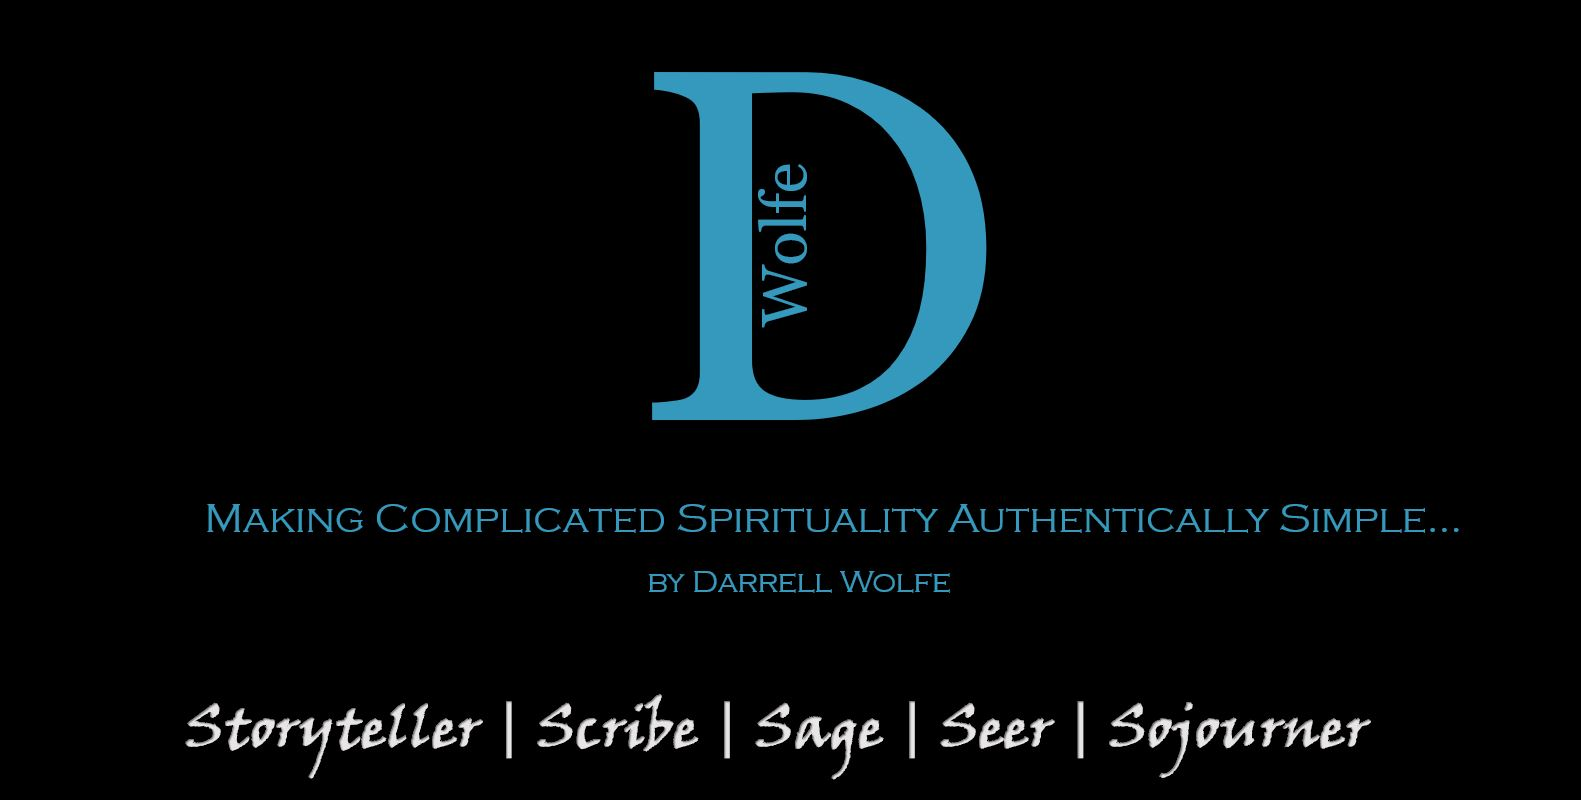 Making Complicated Spirituality Authentically Simple... By Darrell Wolfe